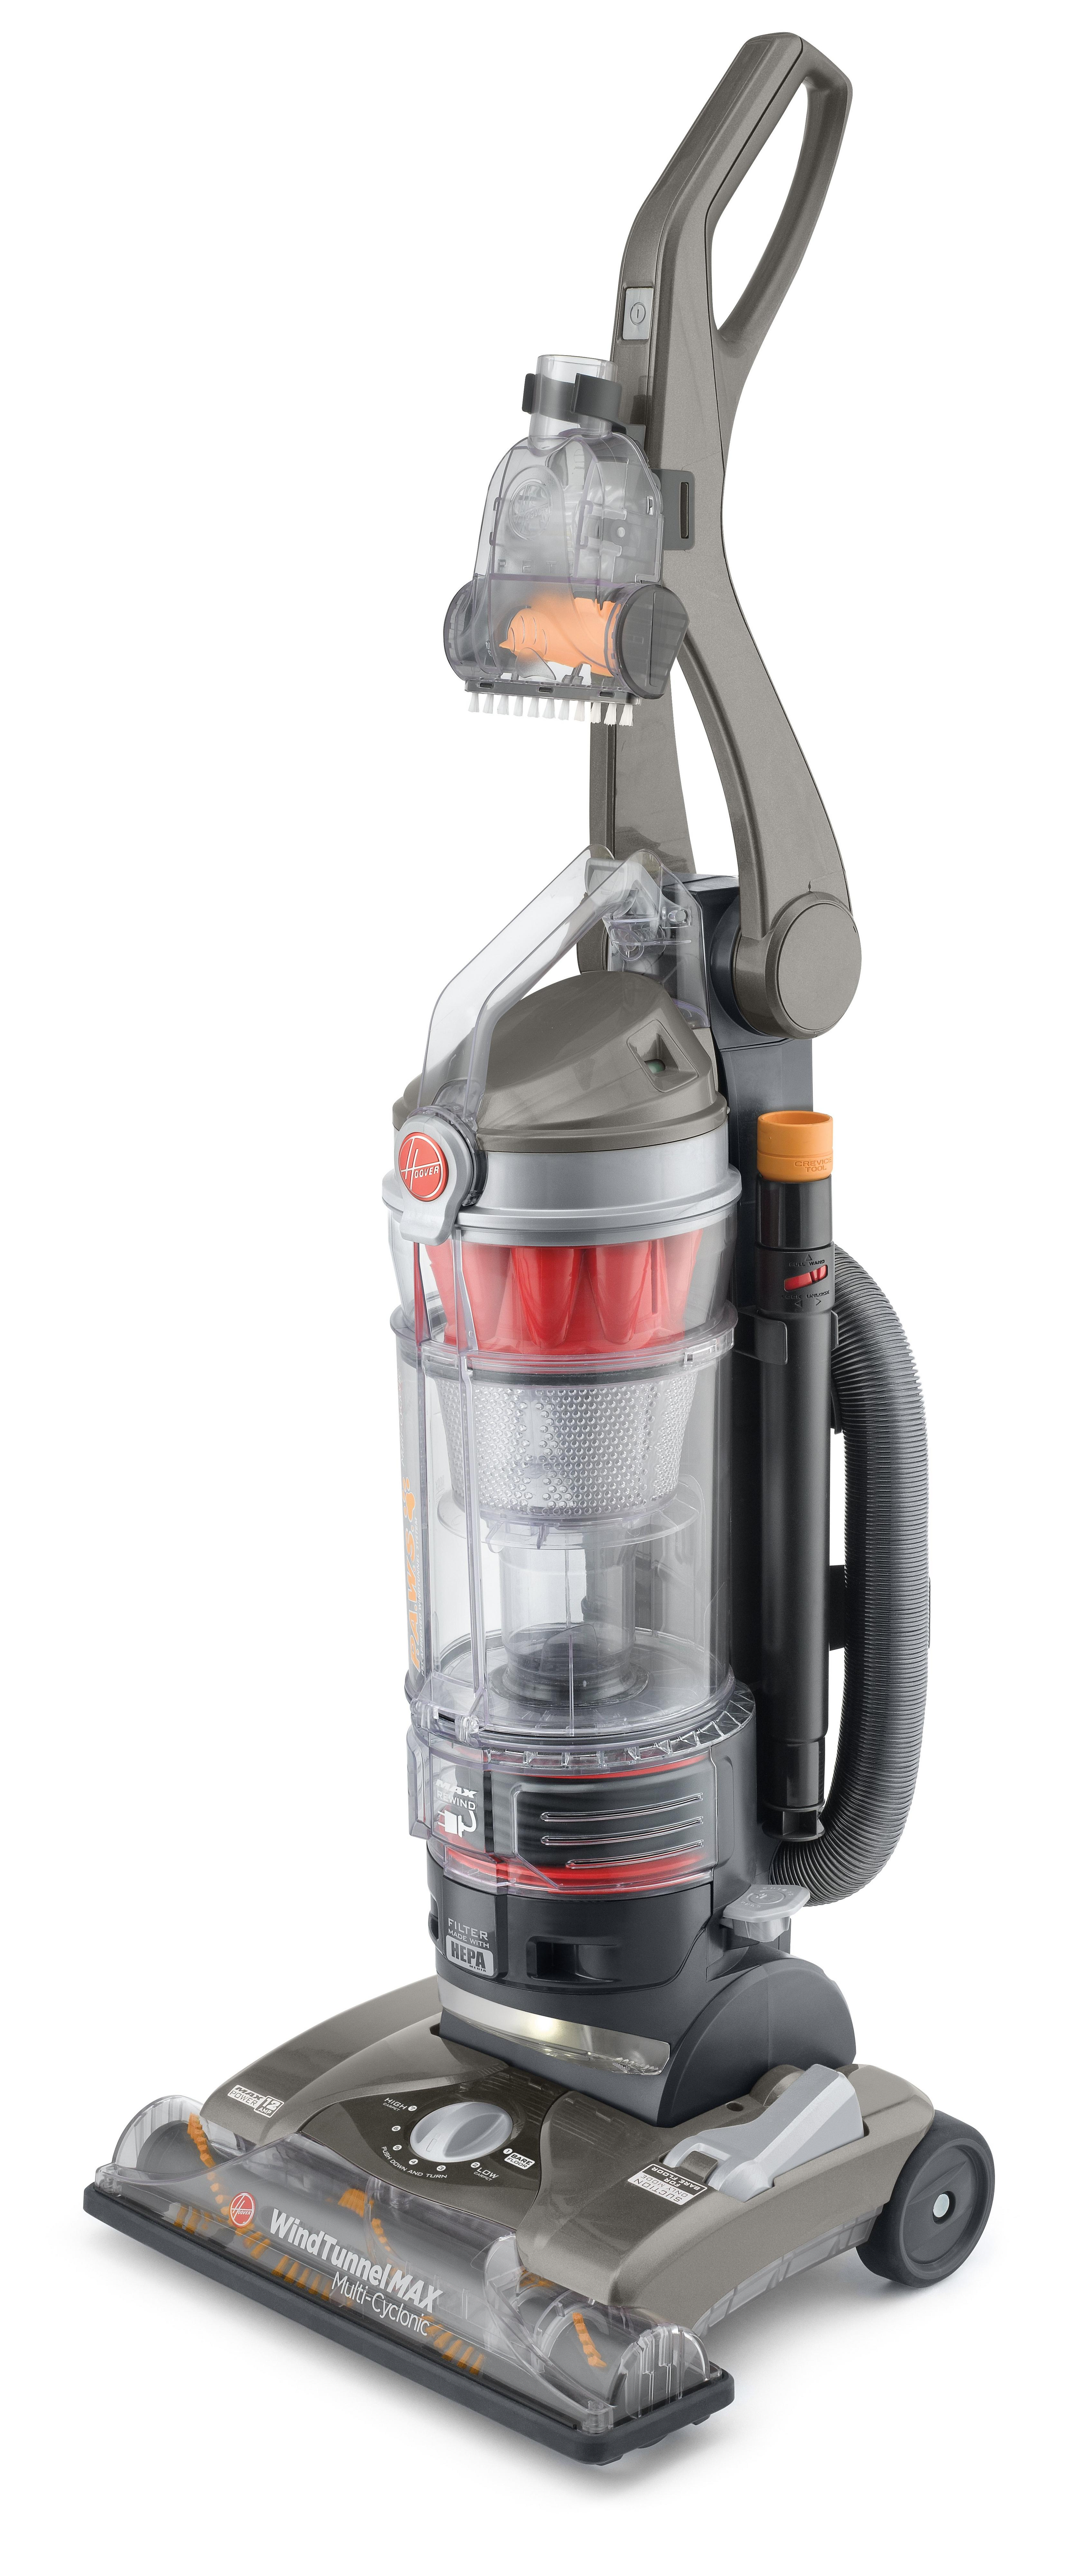 Hoover Windtunnel Max Pet Plus Multi Cyclonic Upright